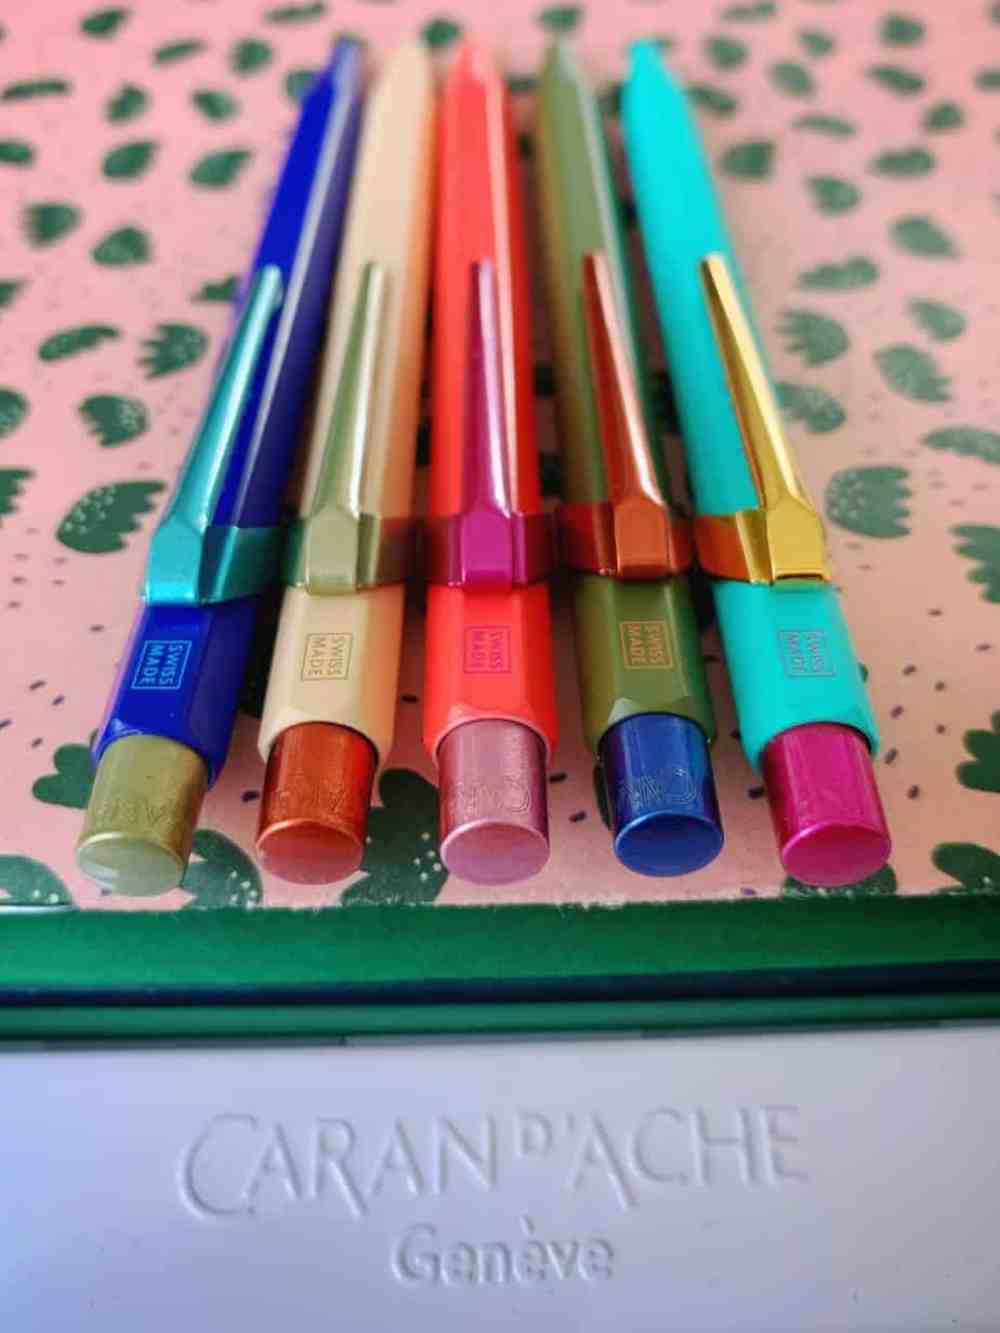 Caran d'Ache limited edition